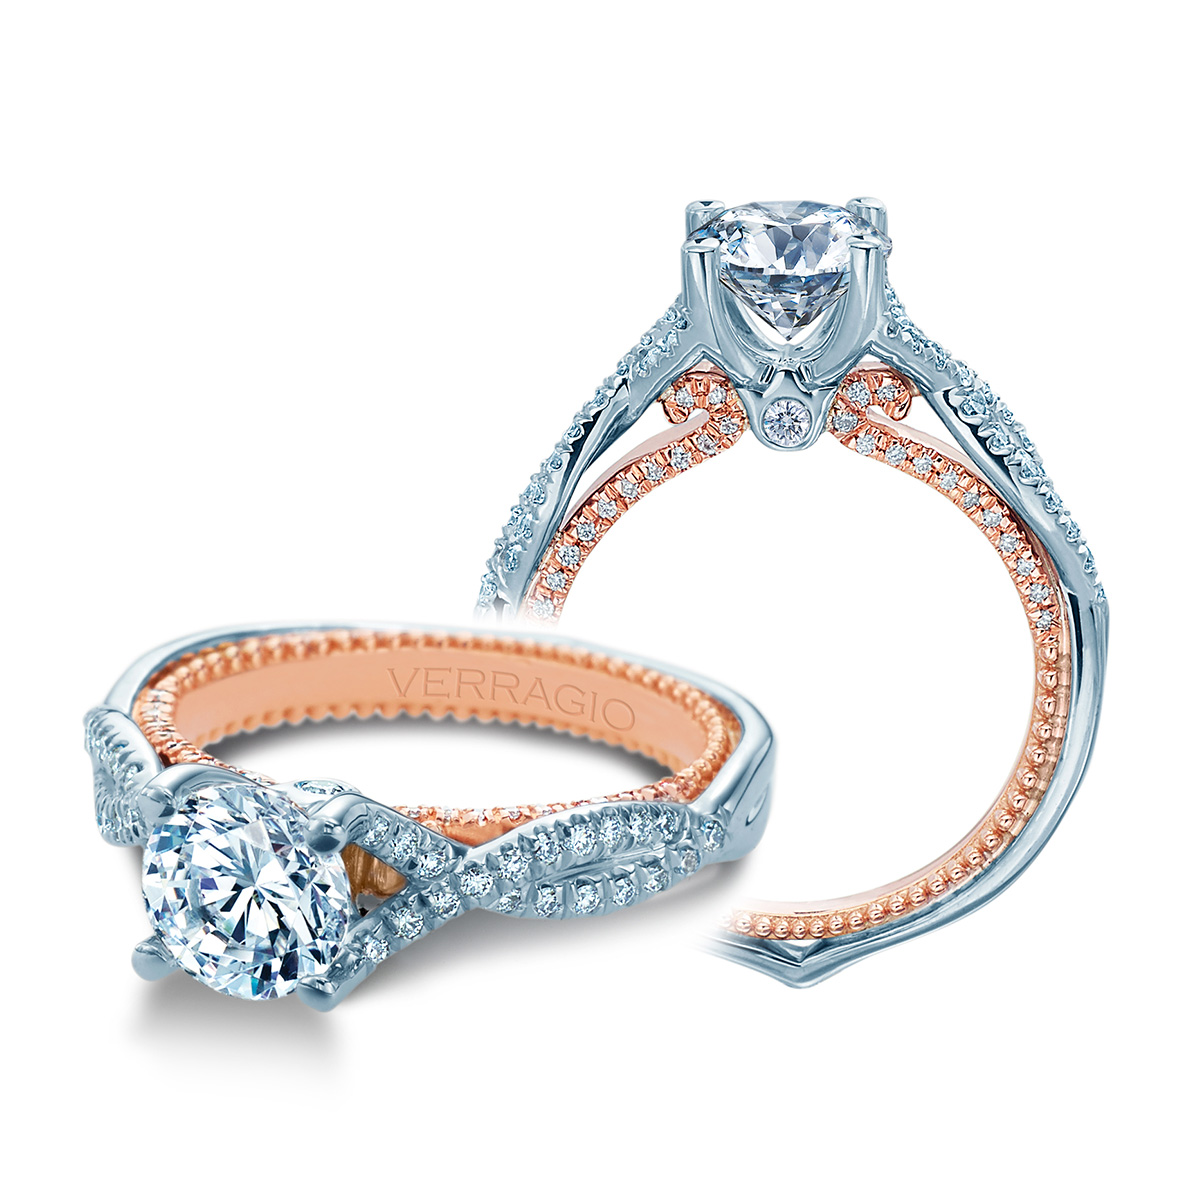 Engagement Verragio rings: the couture collection pictures recommend to wear in on every day in 2019